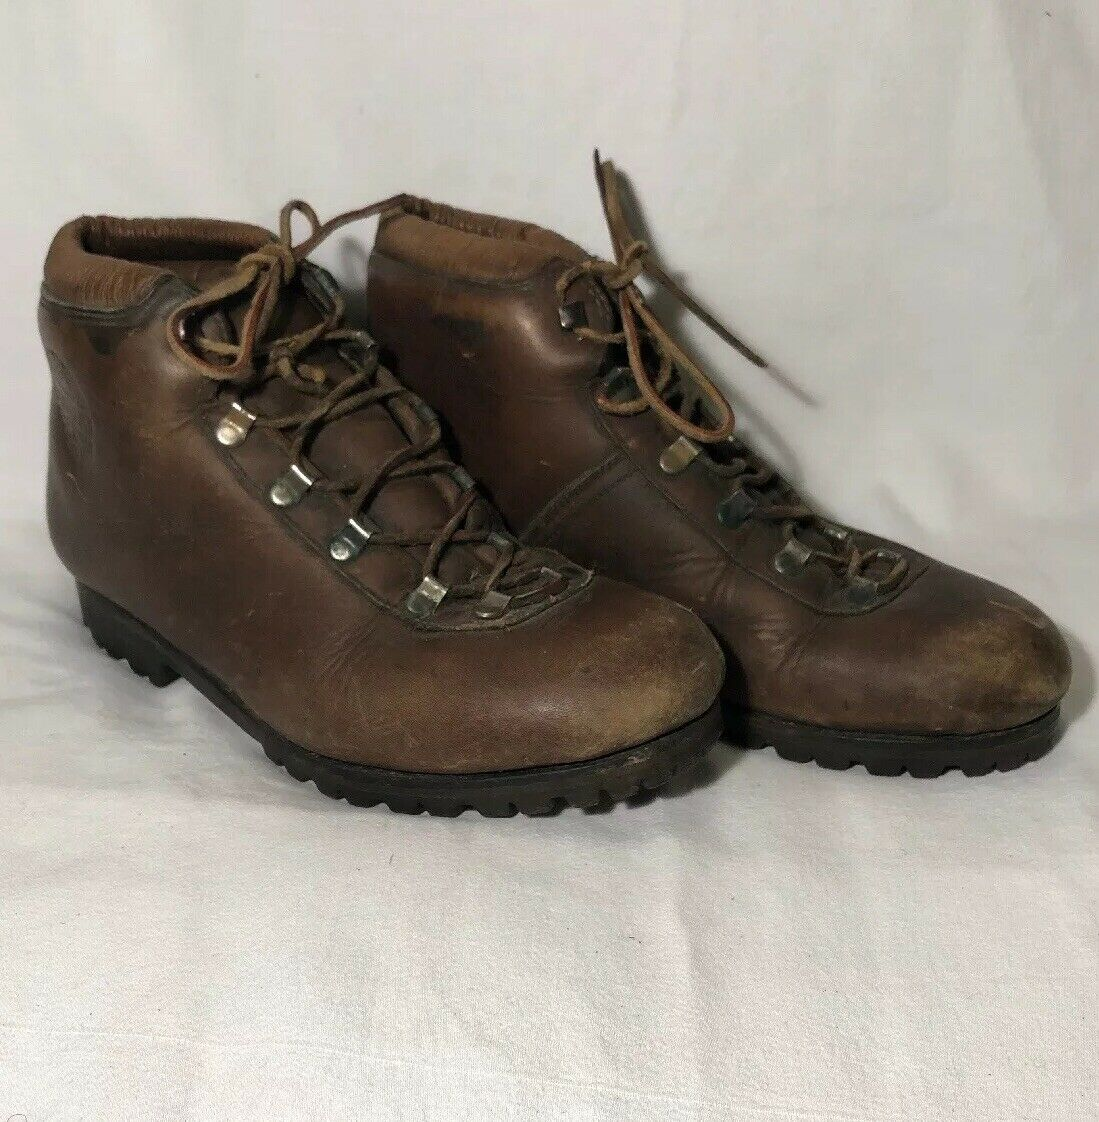 Mens VTG DUNHAM'S TYROLEANS LEATHER HIKING stivali  Made In   Dimensione  7